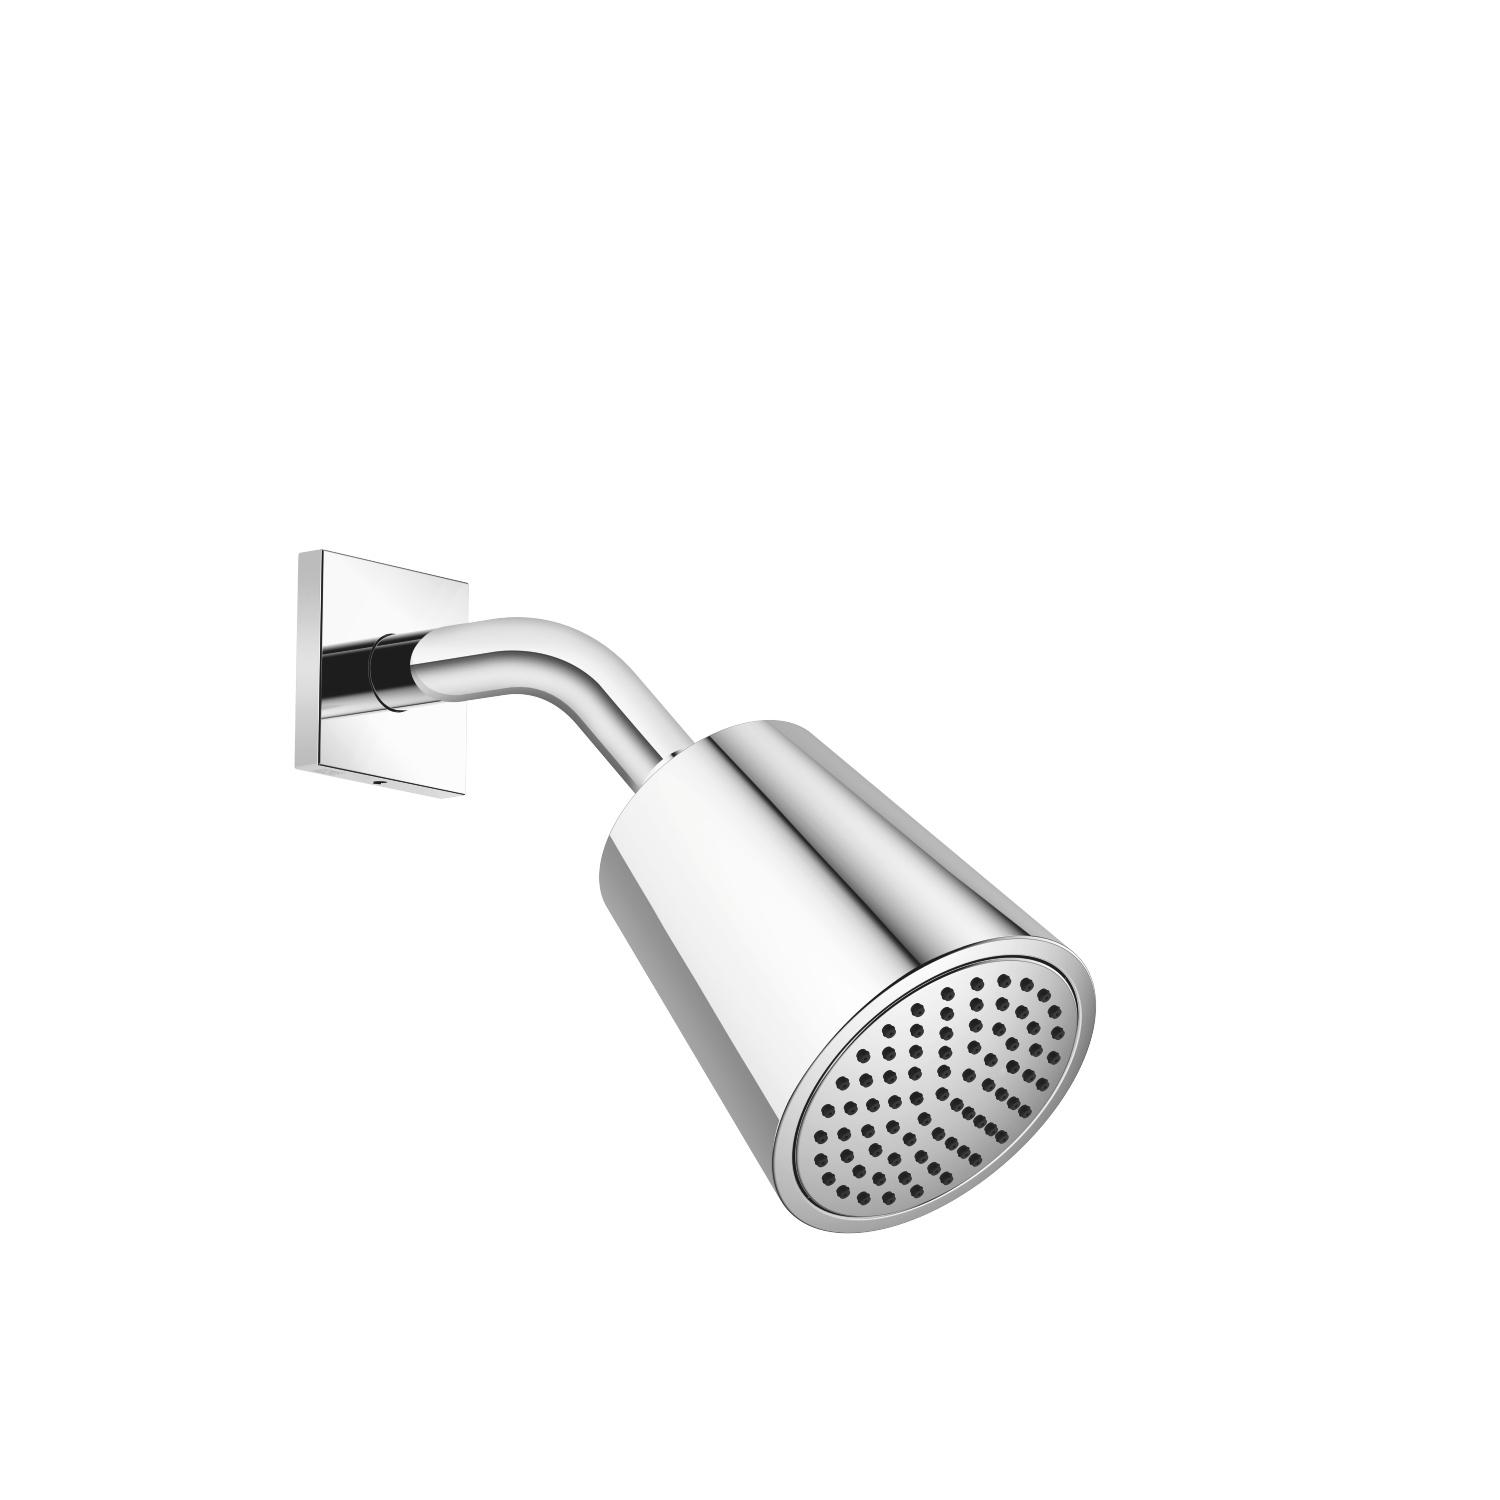 Shower head - polished chrome - 28 504 670-00 0010